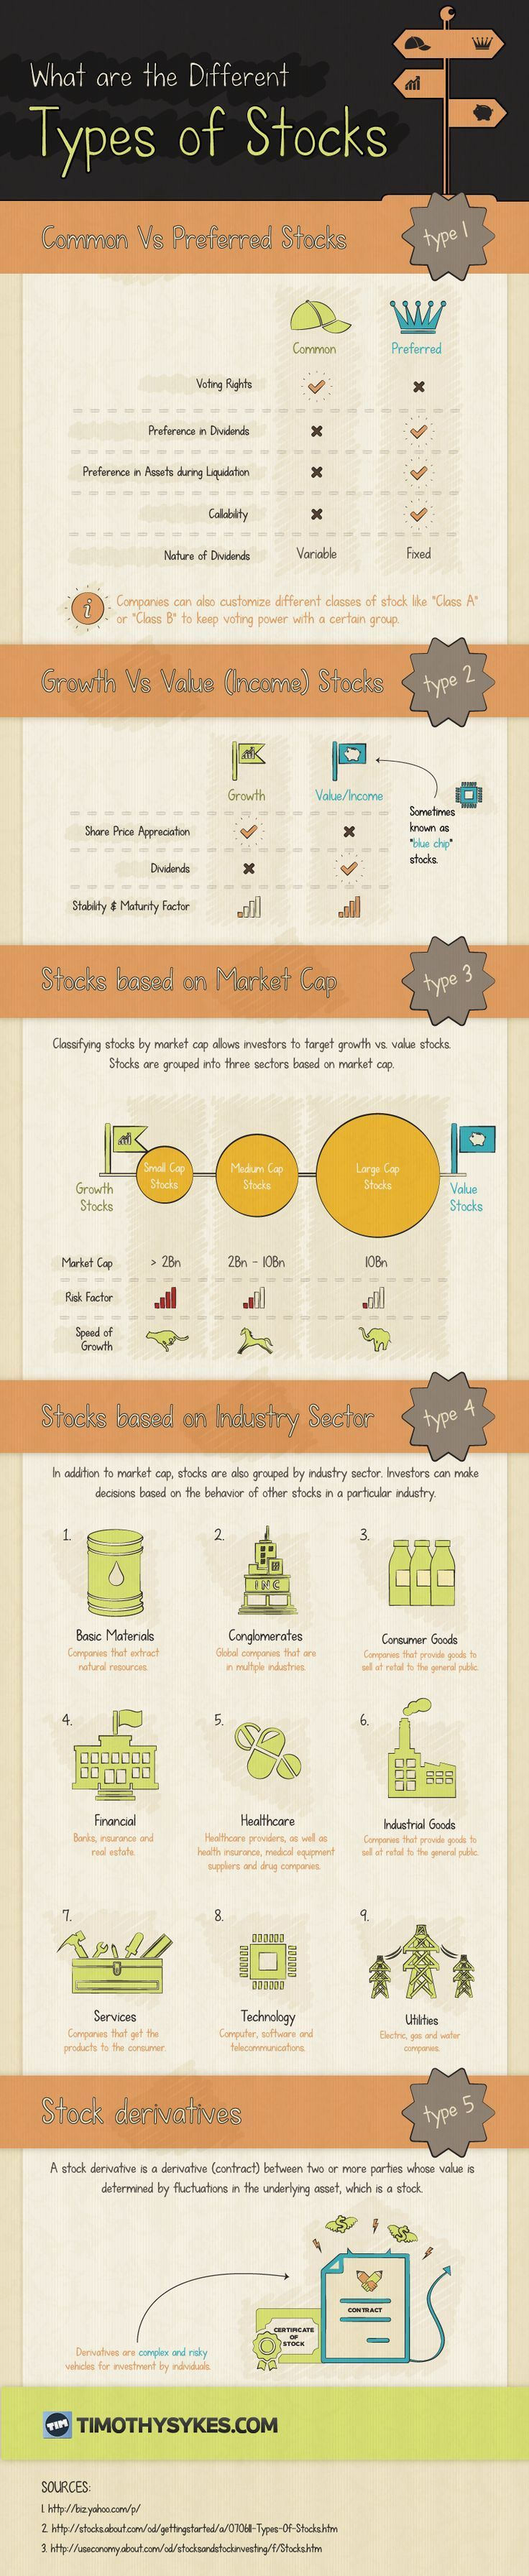 What Are The Different Types of Stocks?   #infographic #Stock #StockBroker